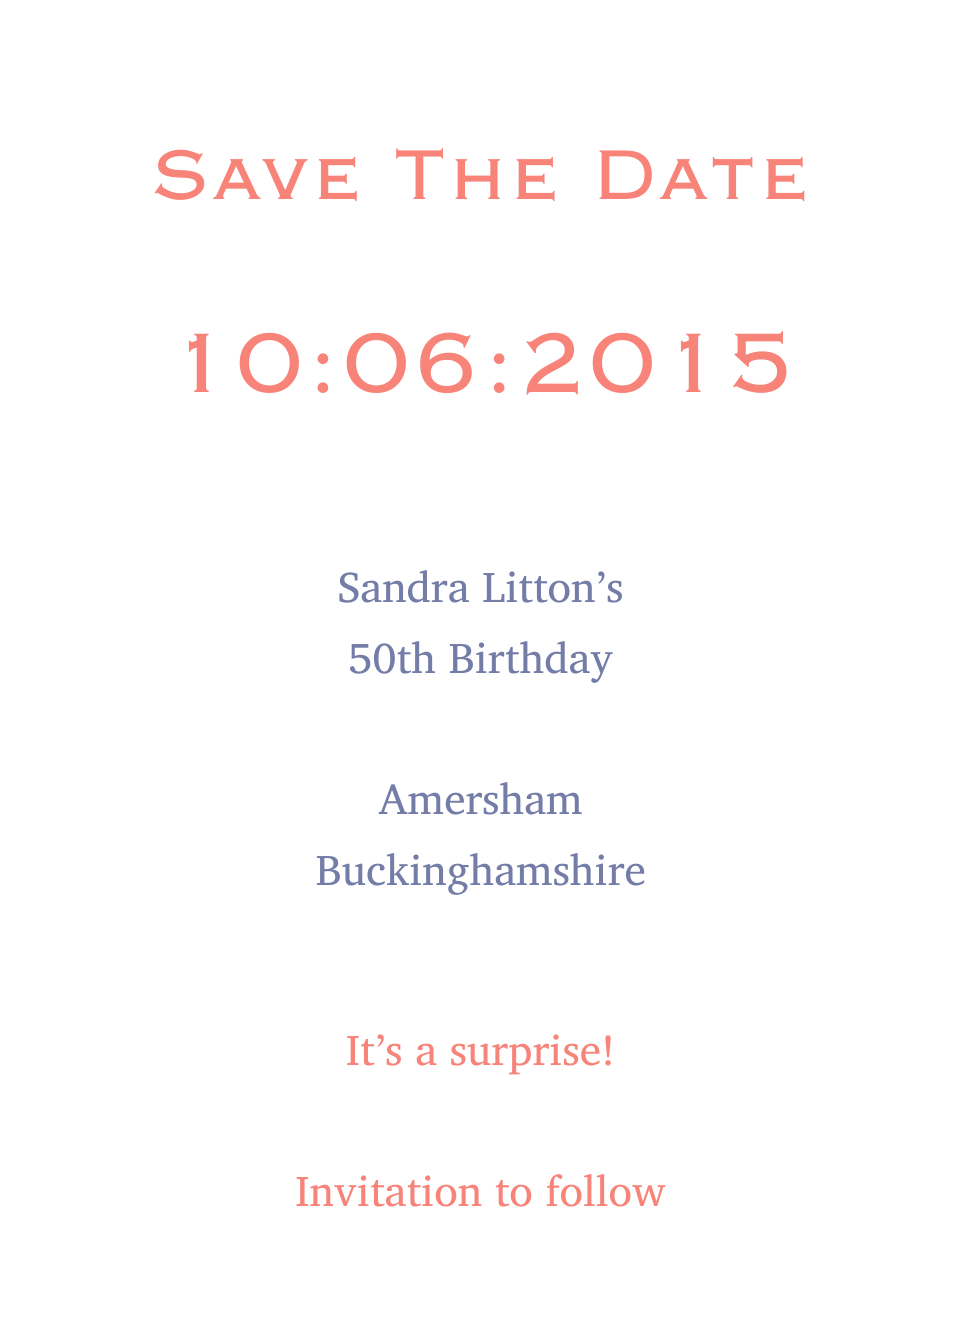 Personalised Stationery : A6 Save the Date Cards : Amersham